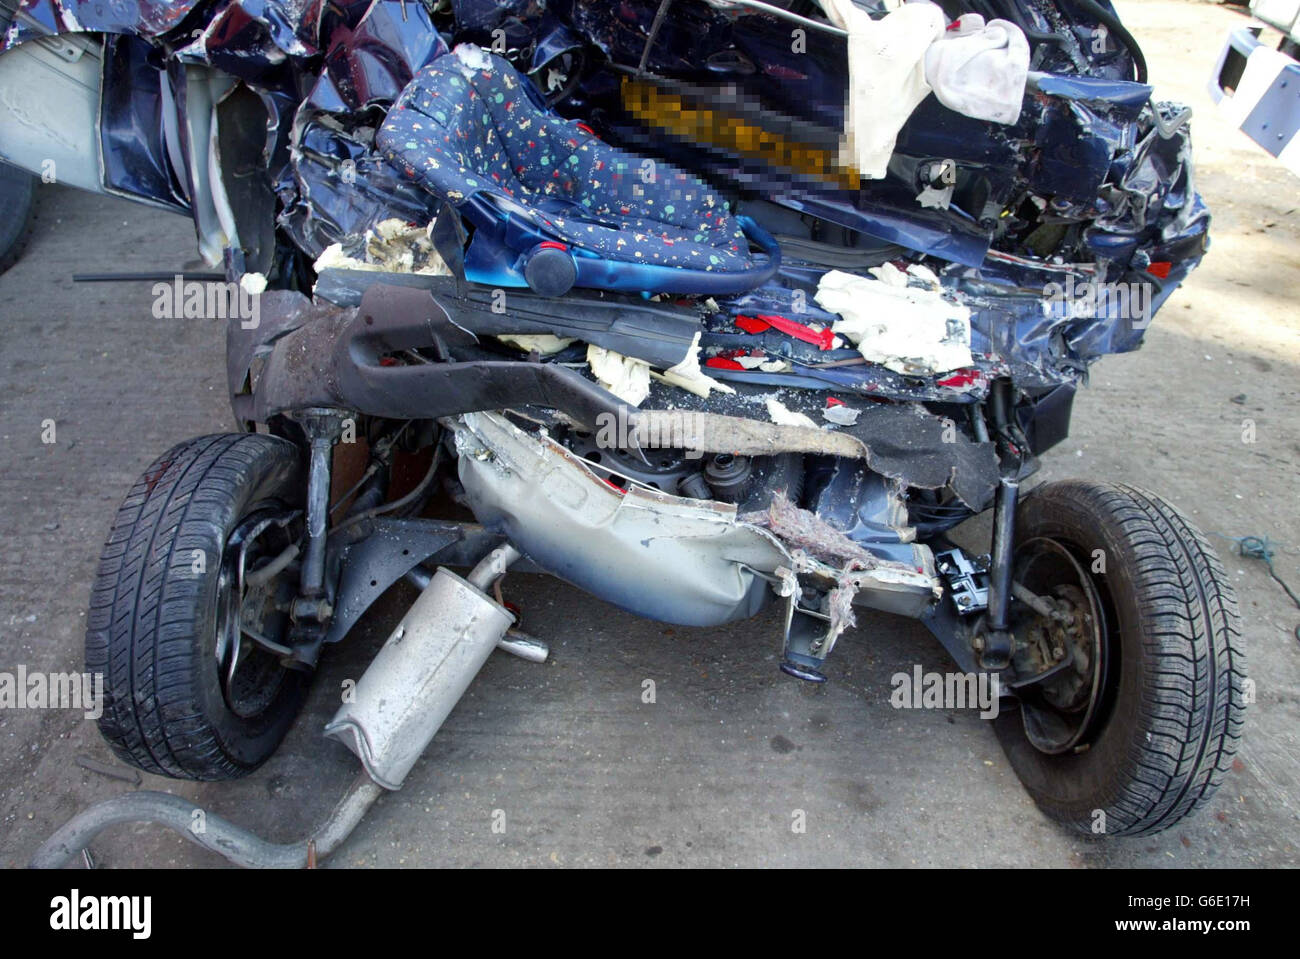 Family Killed in Accident on the M1 Stock Photo: 107258469 - Alamy